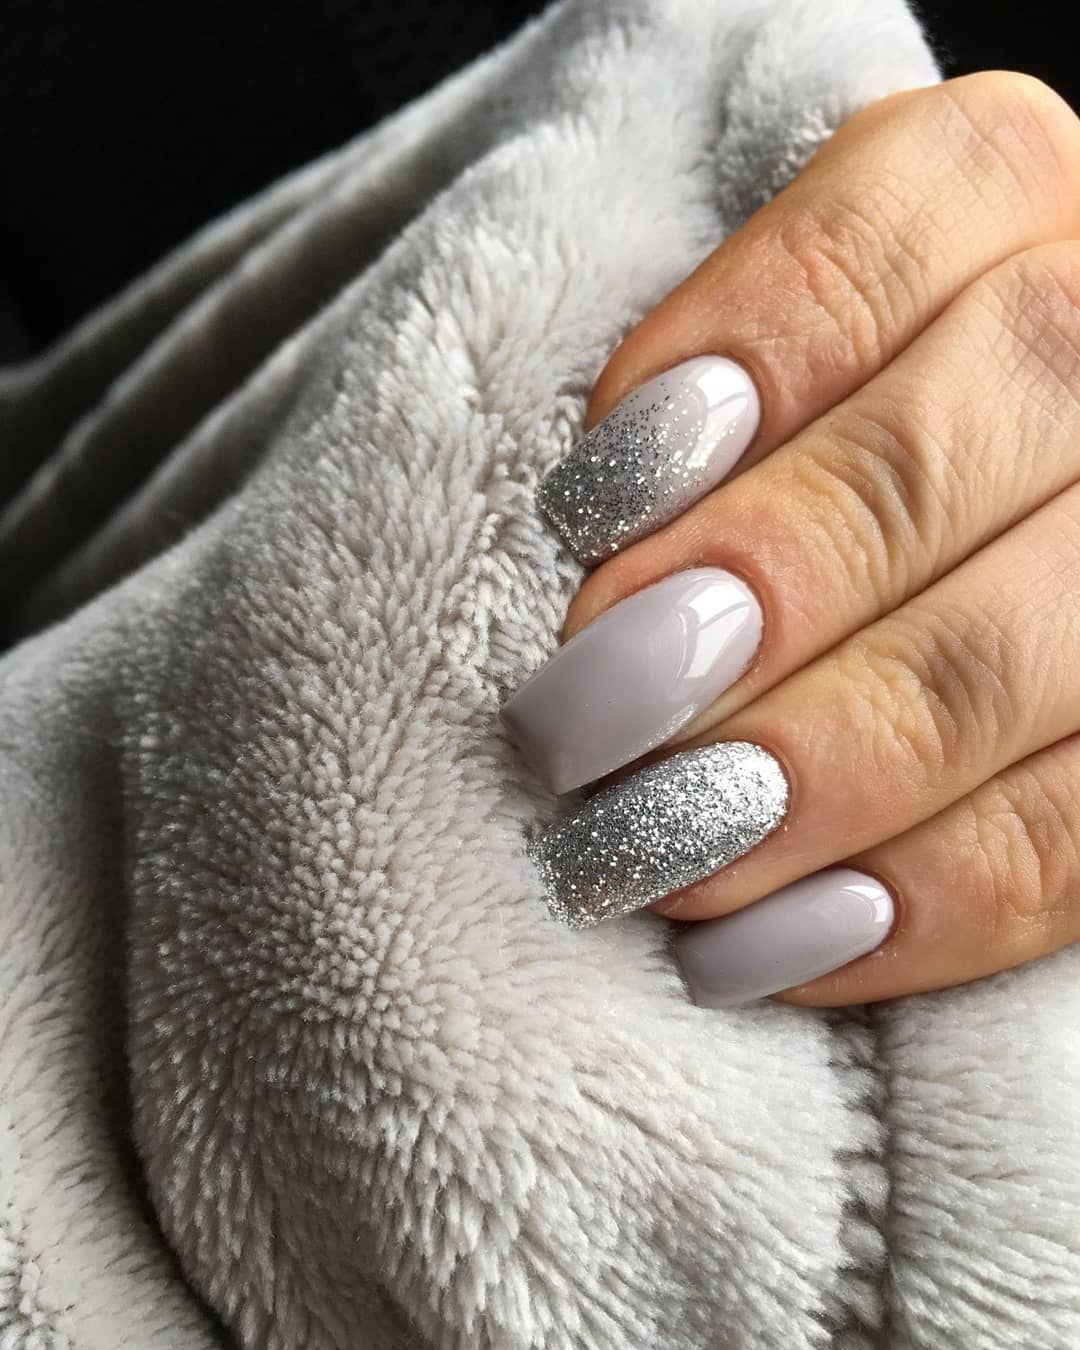 Gorgeous grey and glitter nail art design